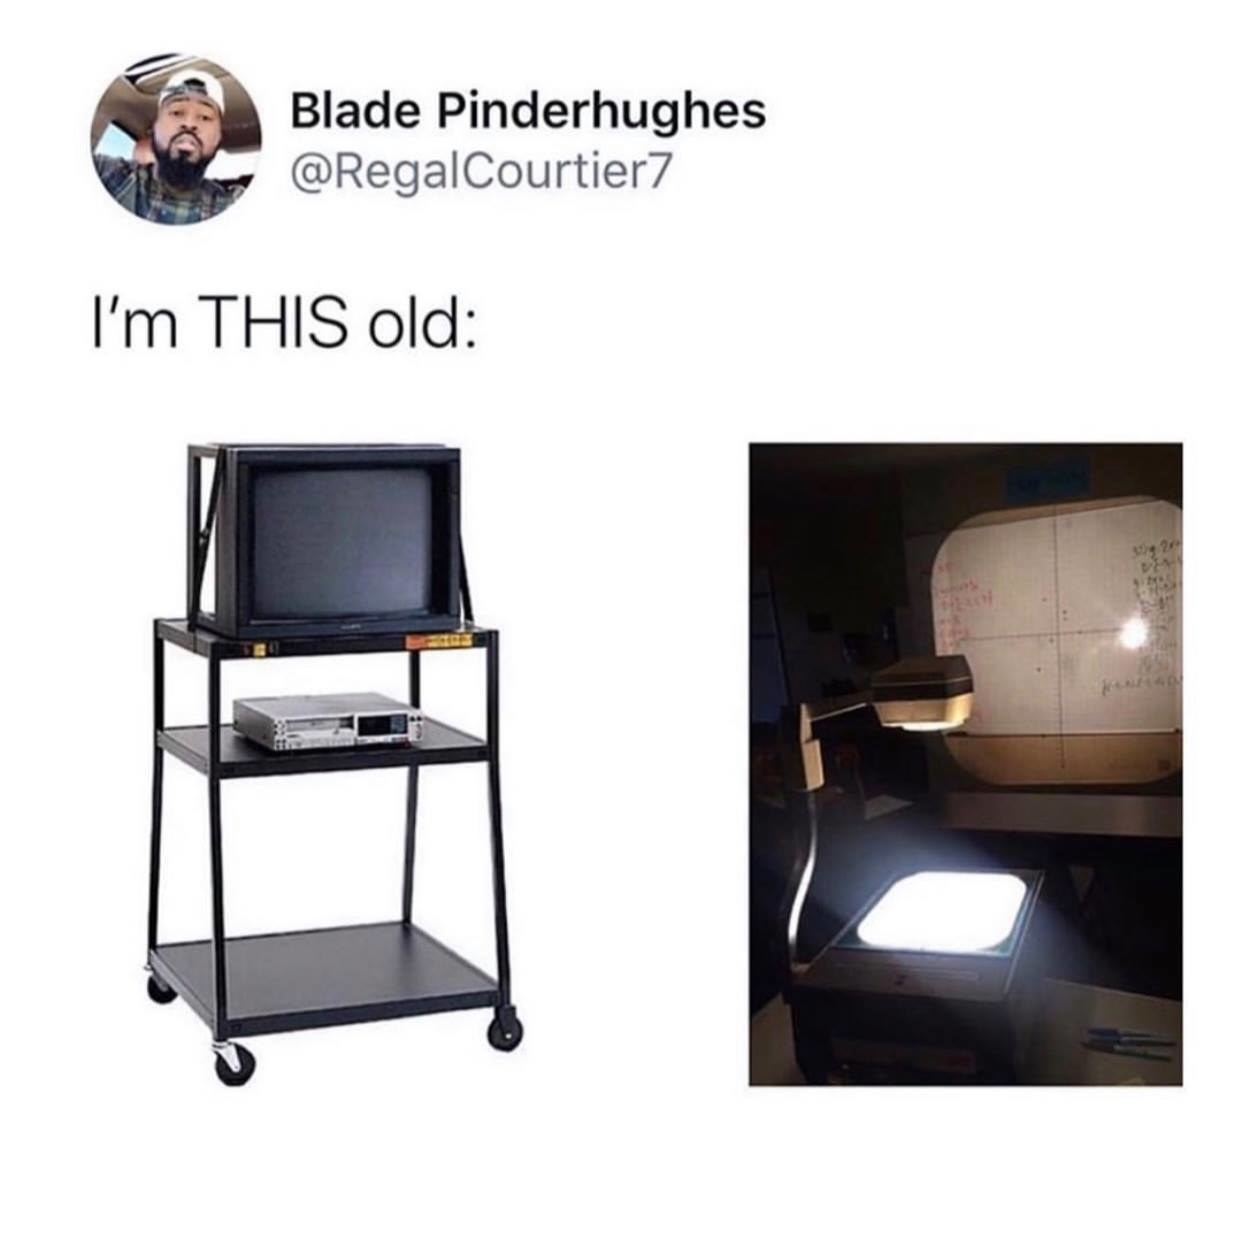 a classroom TV and an overhead projector